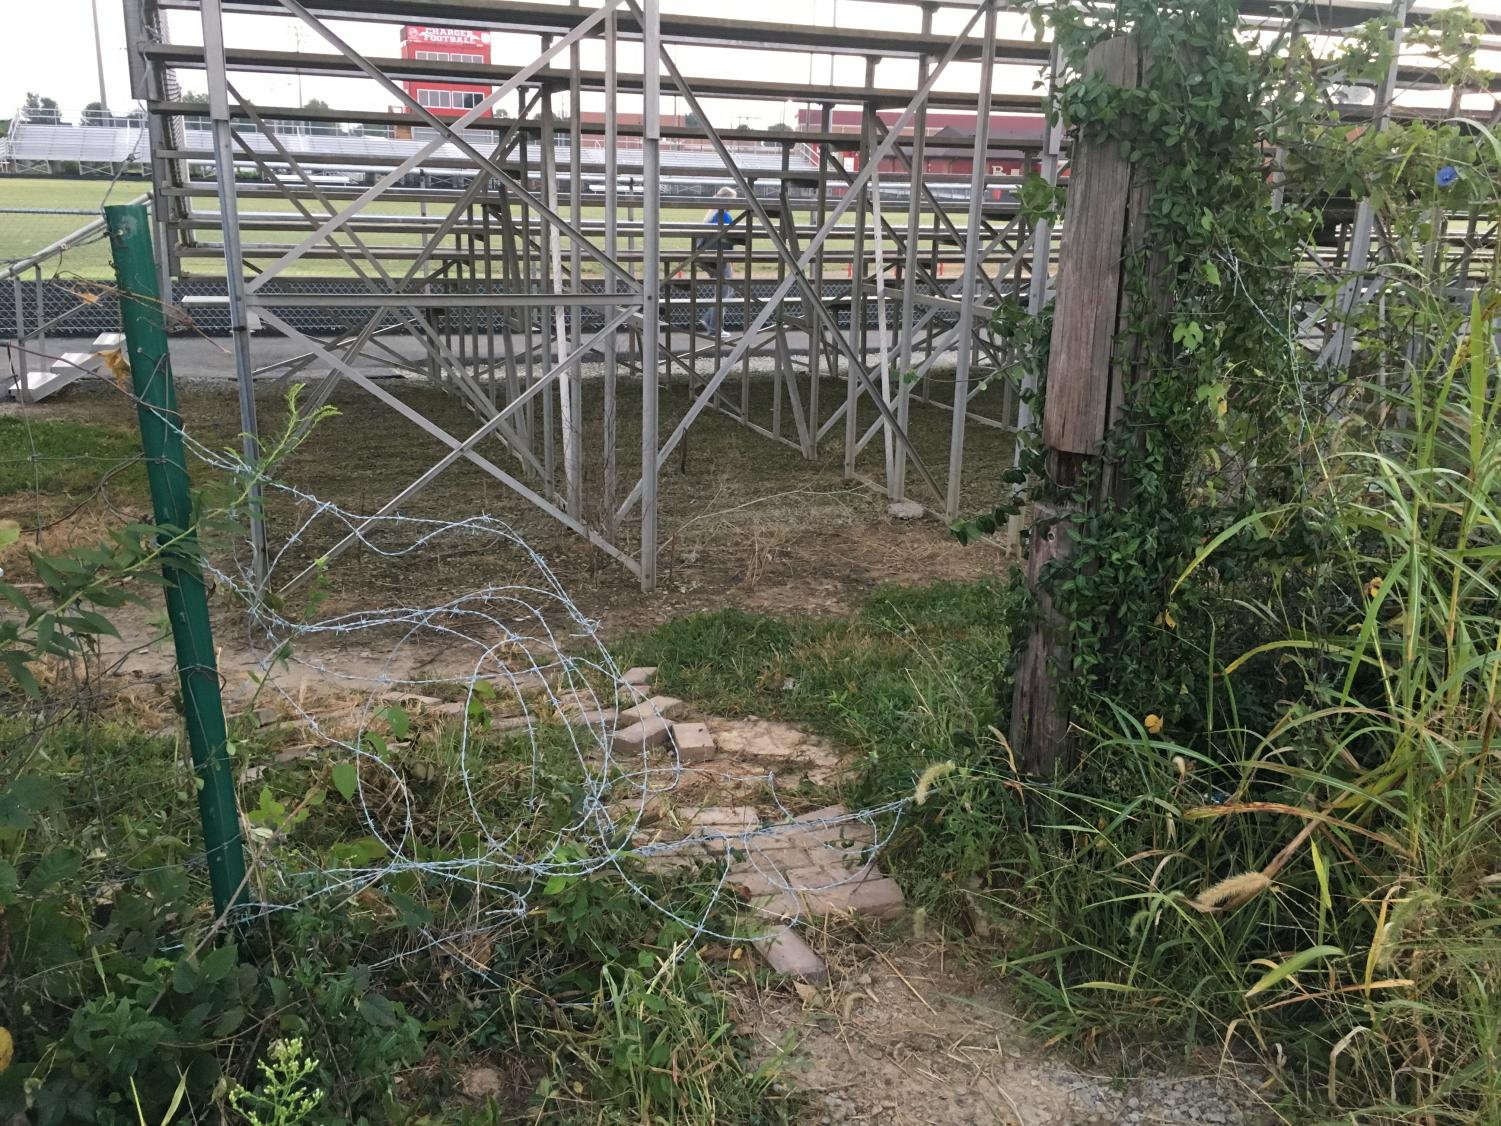 Here you can see the cut through and where the barbed wire fence was put in. You can also see where someone has bent it so that it is possible to step over.